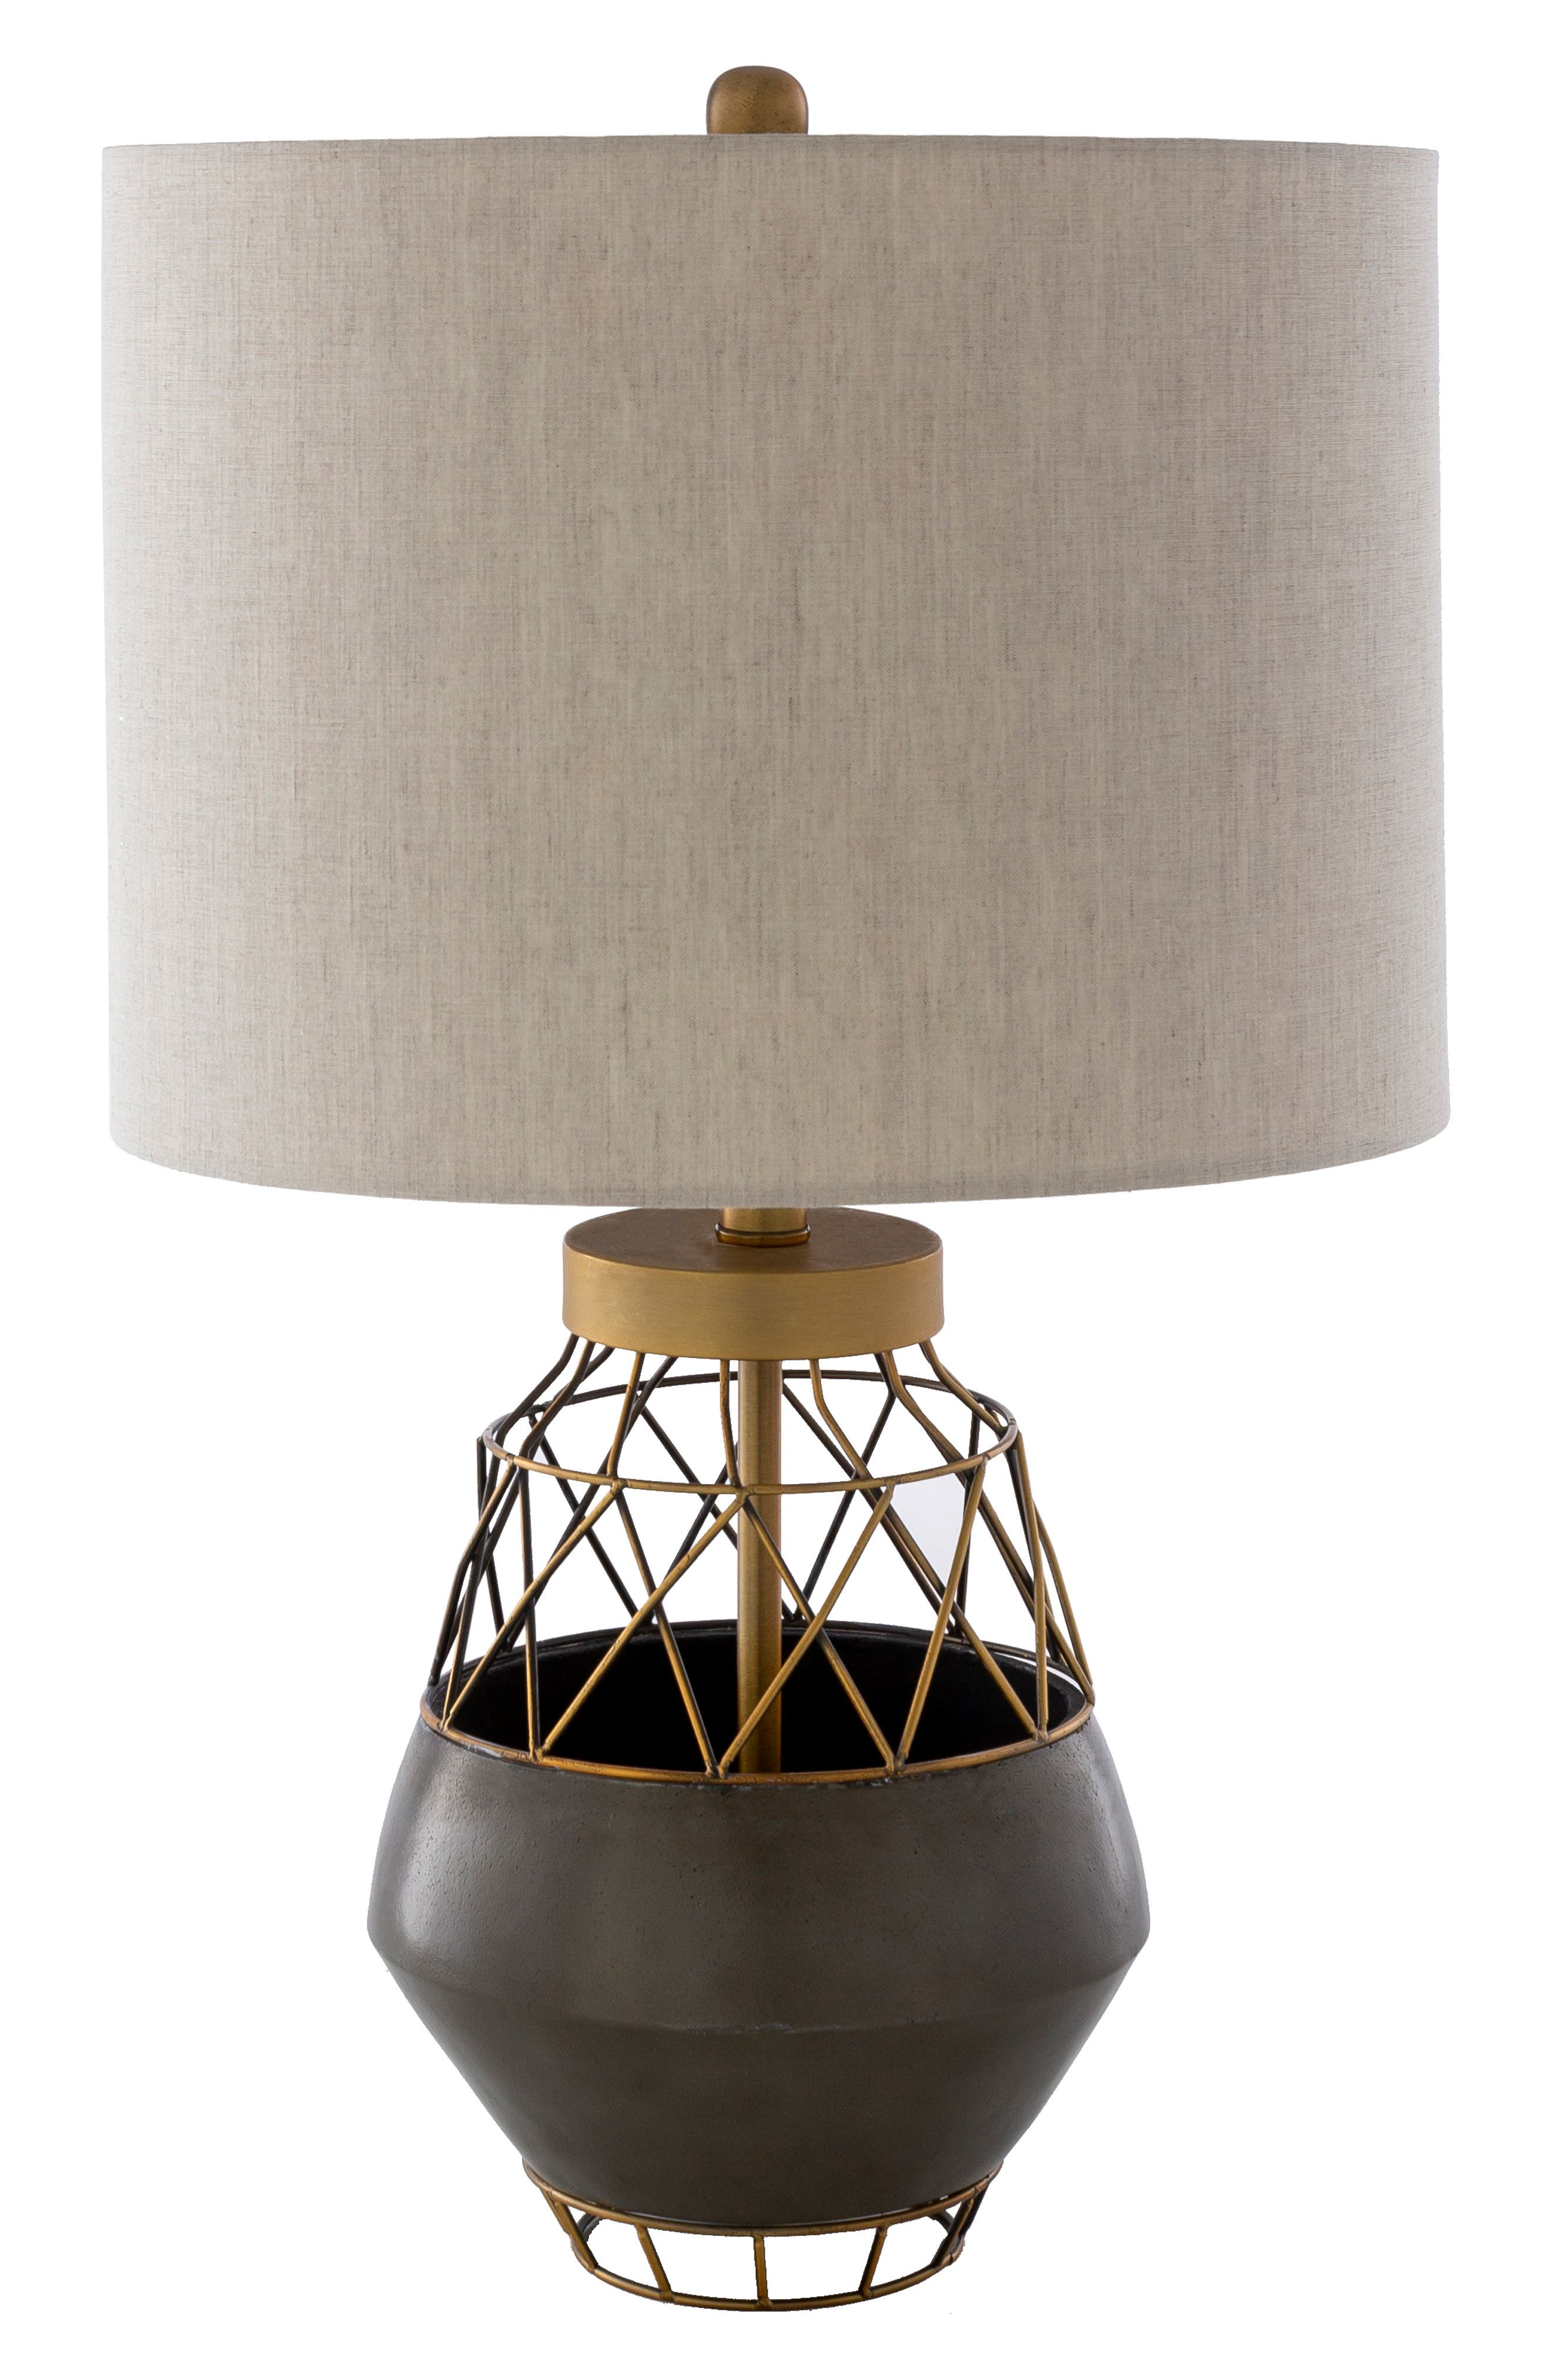 Surya Home Iverness Table Lamp